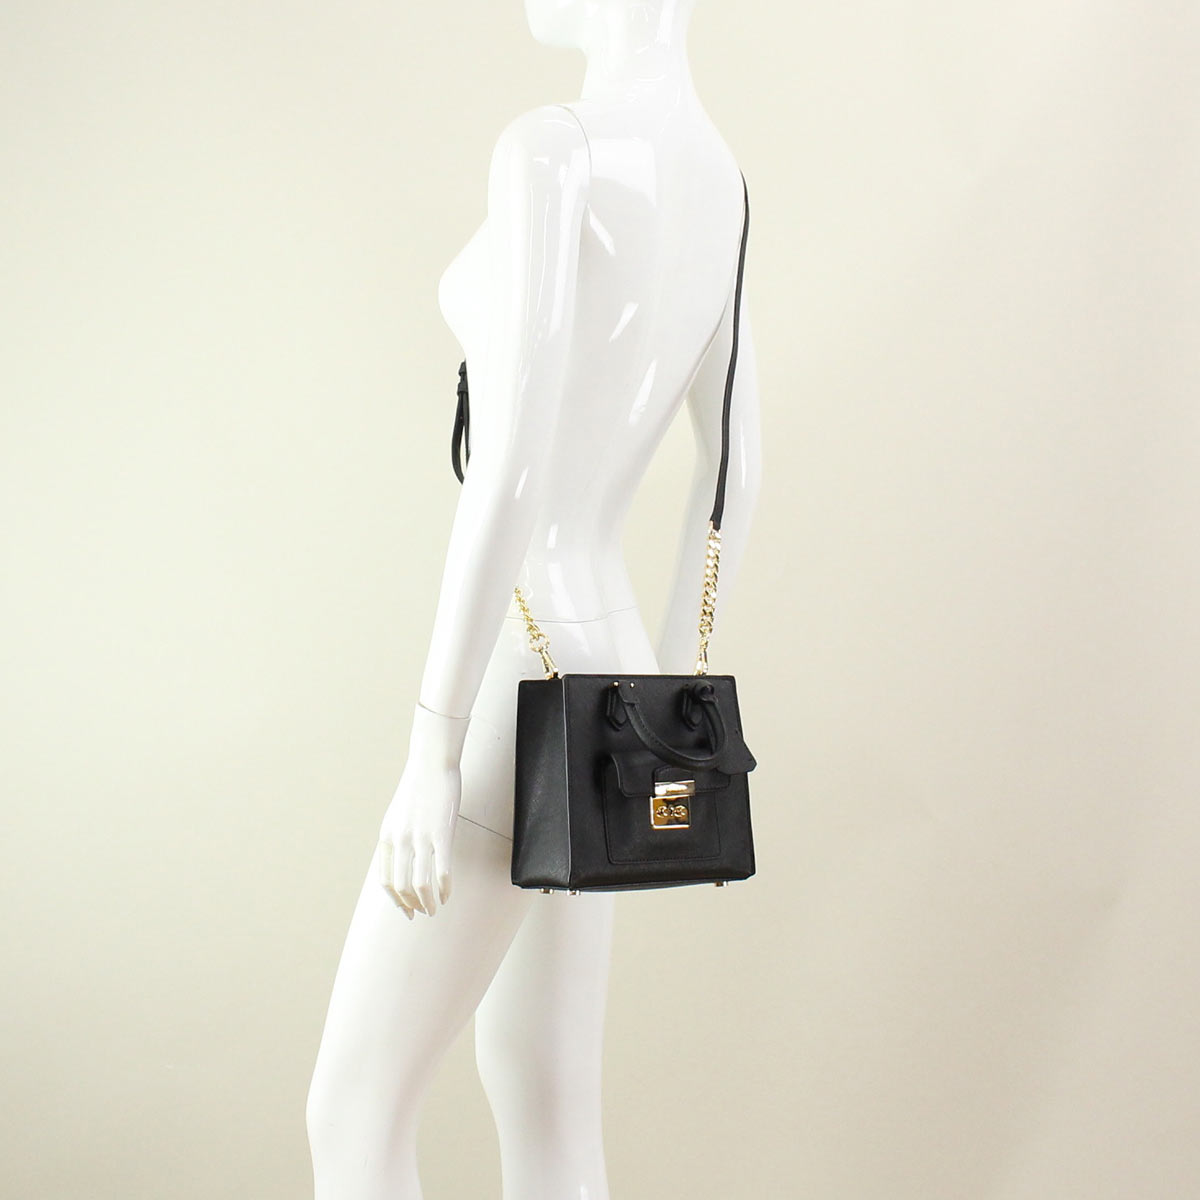 Michael Kors (MICHAEL KORS) 30T6GBDT1L BLACK top handle bag black( taxfree/send by EMS/authentic/A brand new item )